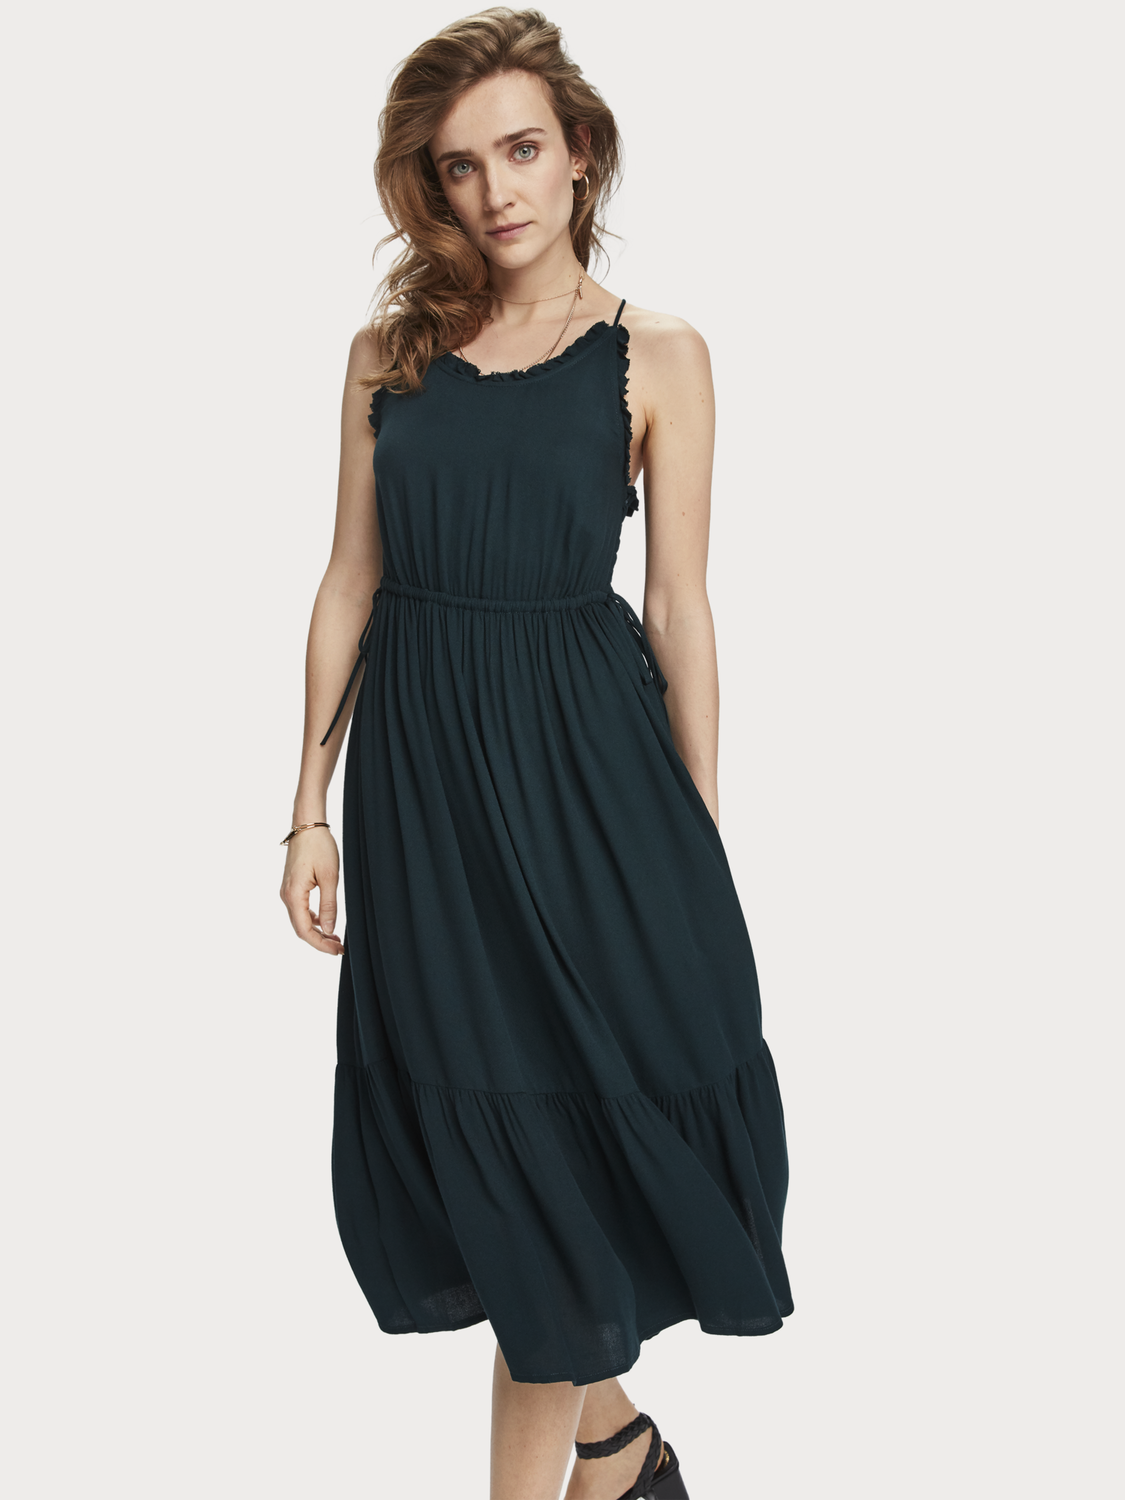 Women Spaghetti Strap Summer Dress